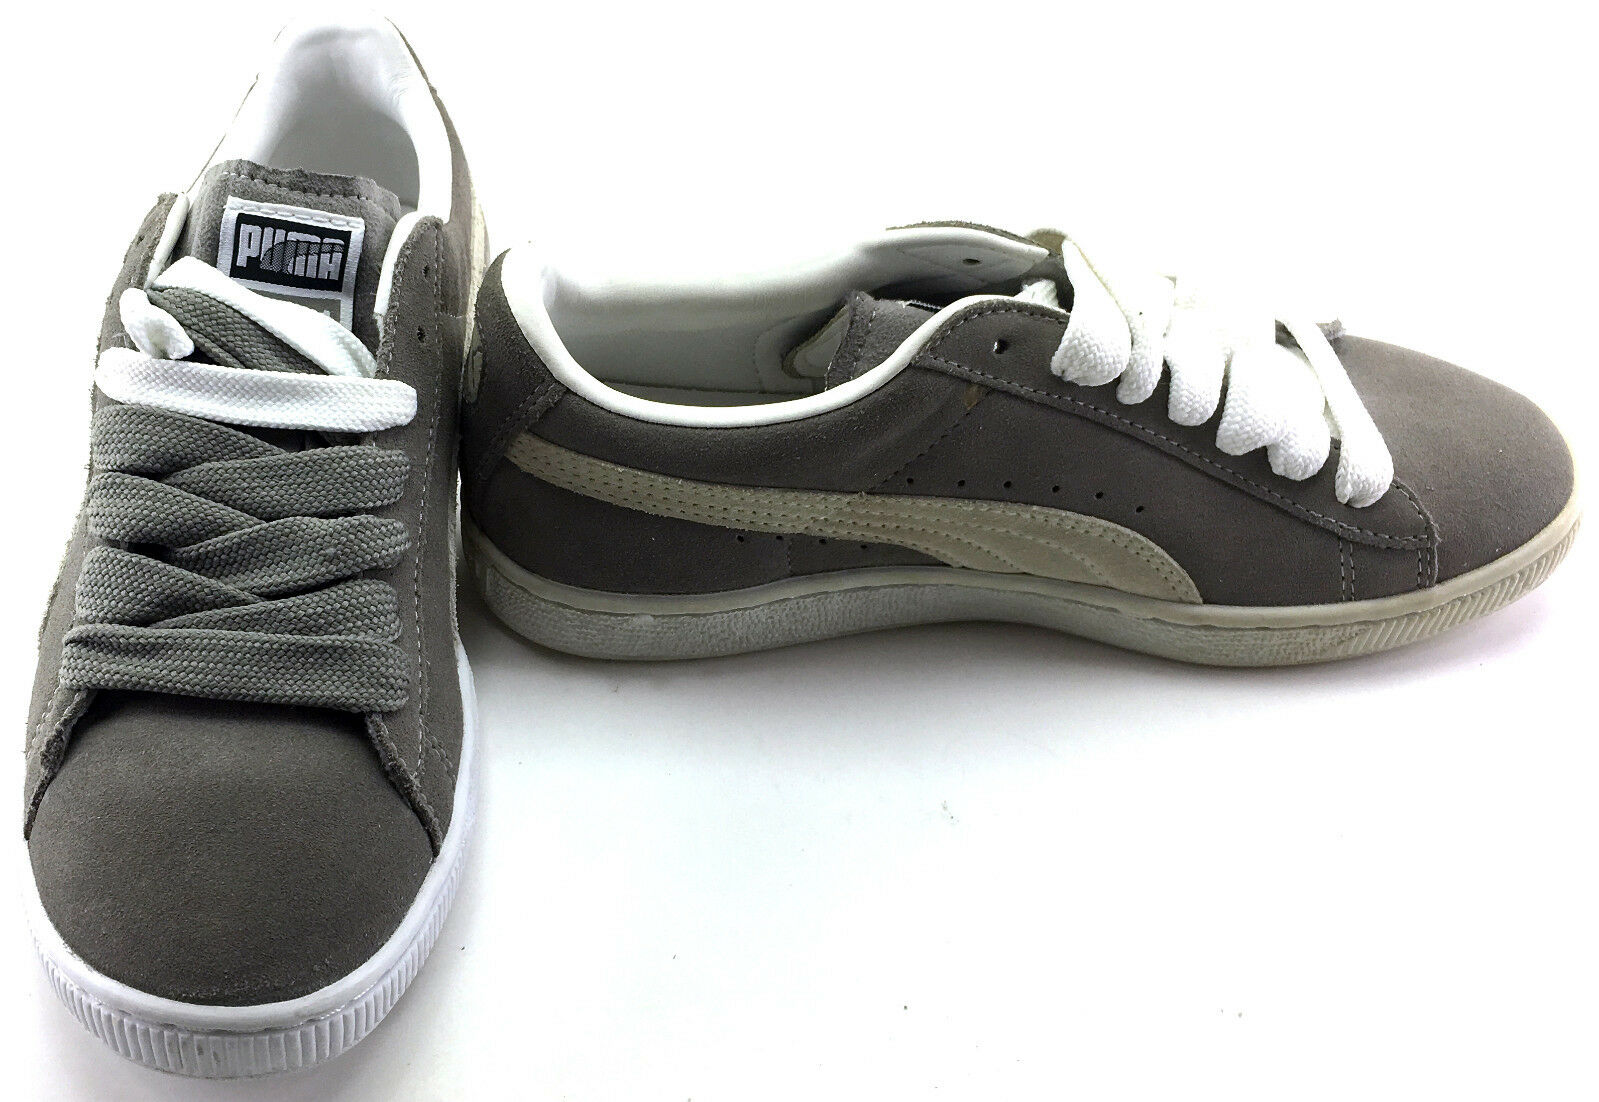 Puma Shoes Suede 10 Classic Gray Sneakers Comfortable Seasonal price cuts, discount benefits